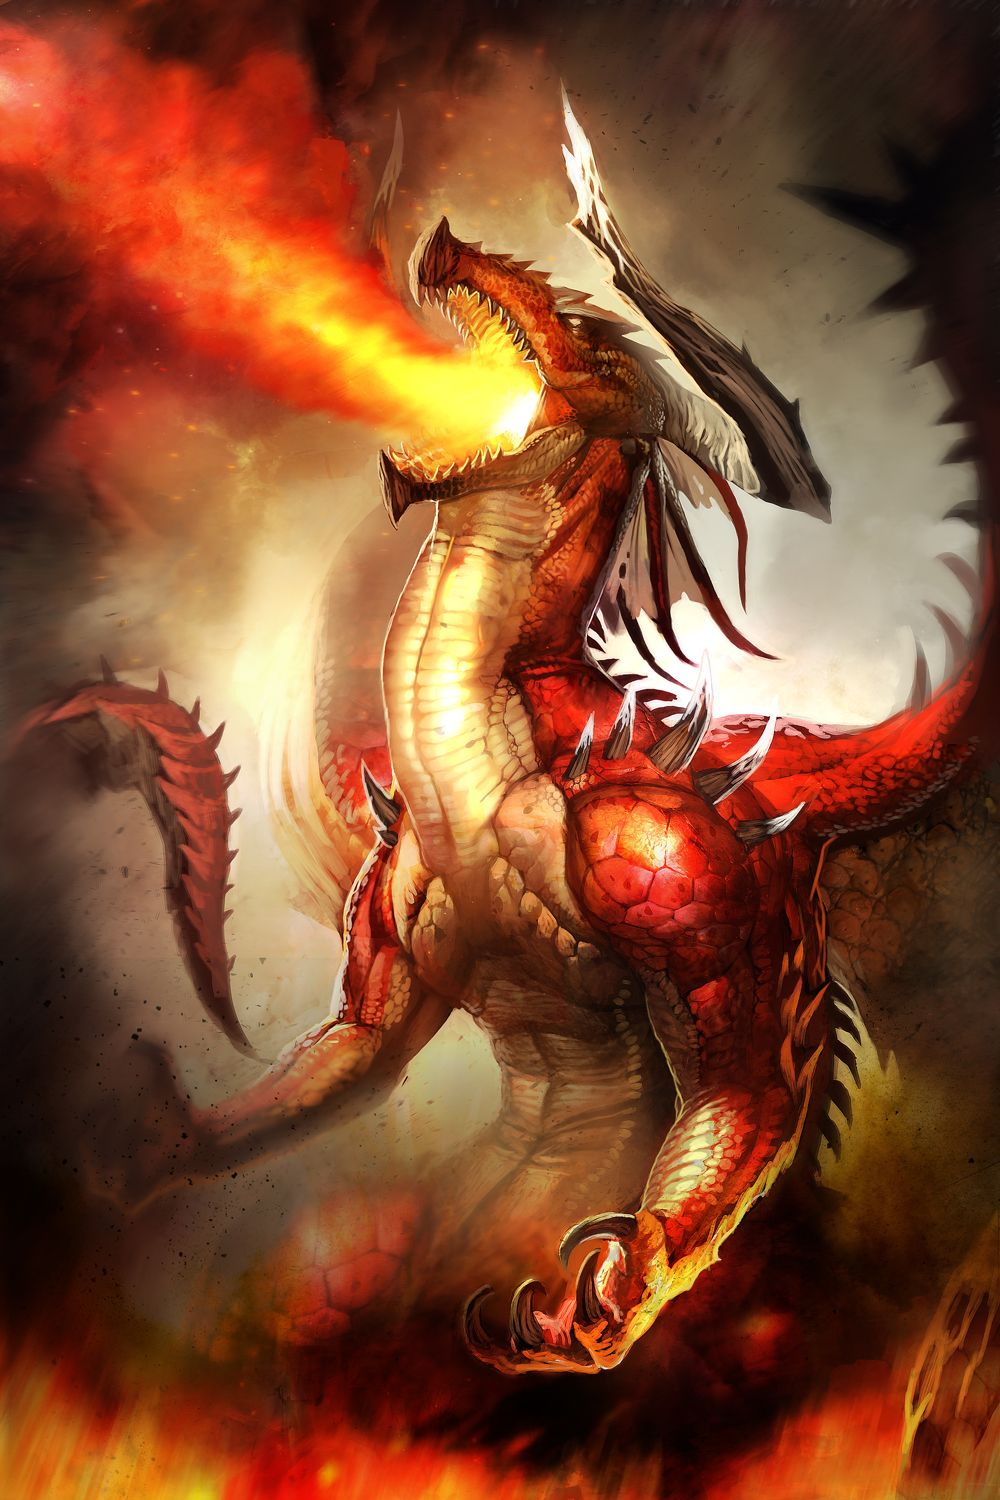 Red Fire Dragon: Because Red Dragons Are So Confident, They Seldom Pause To